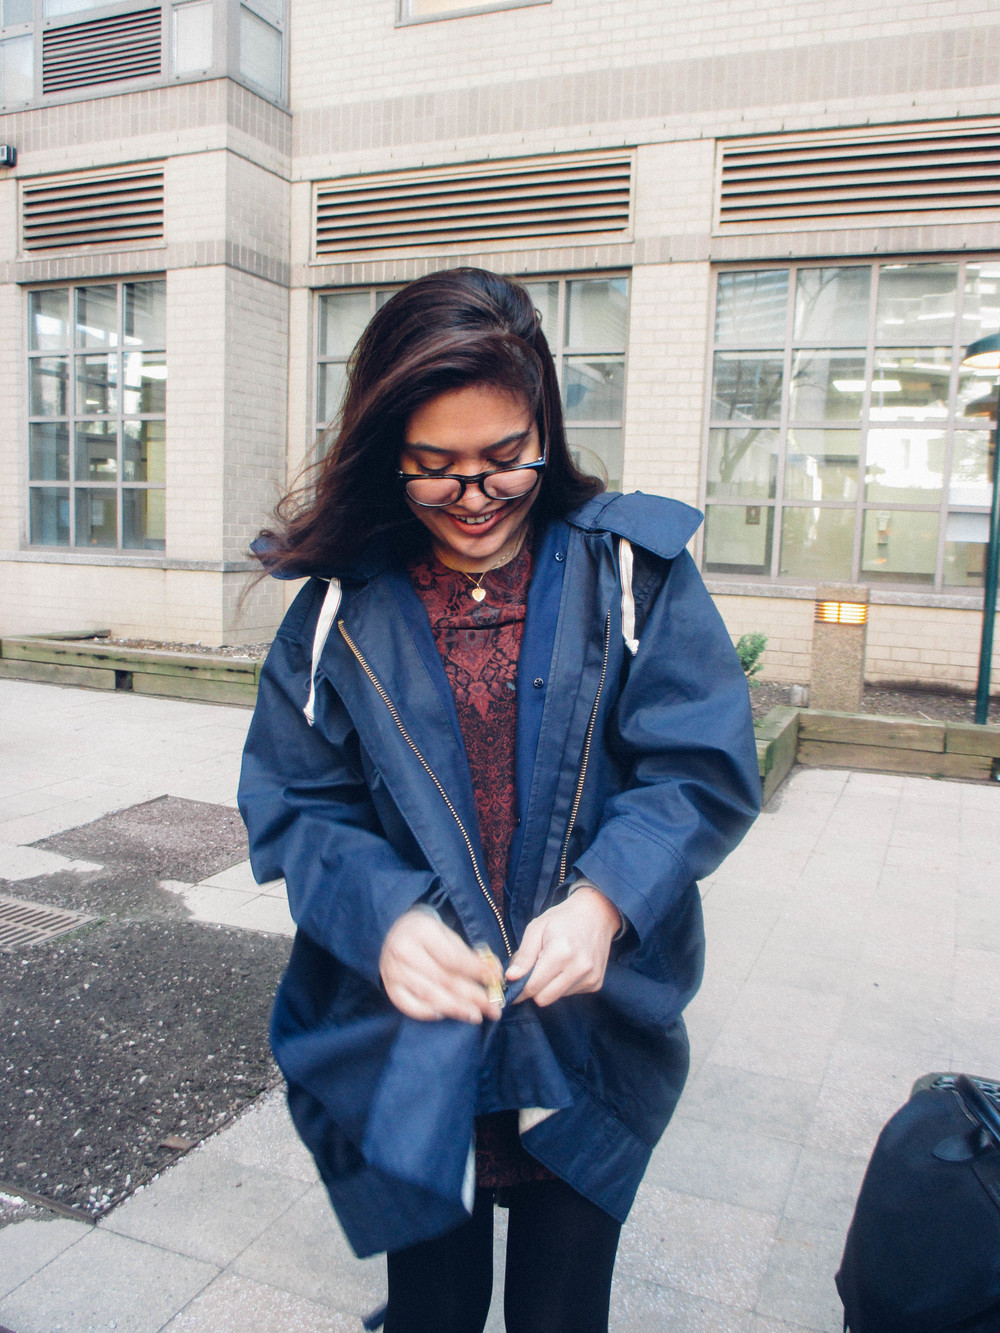 Anny and her über adorable jacket.